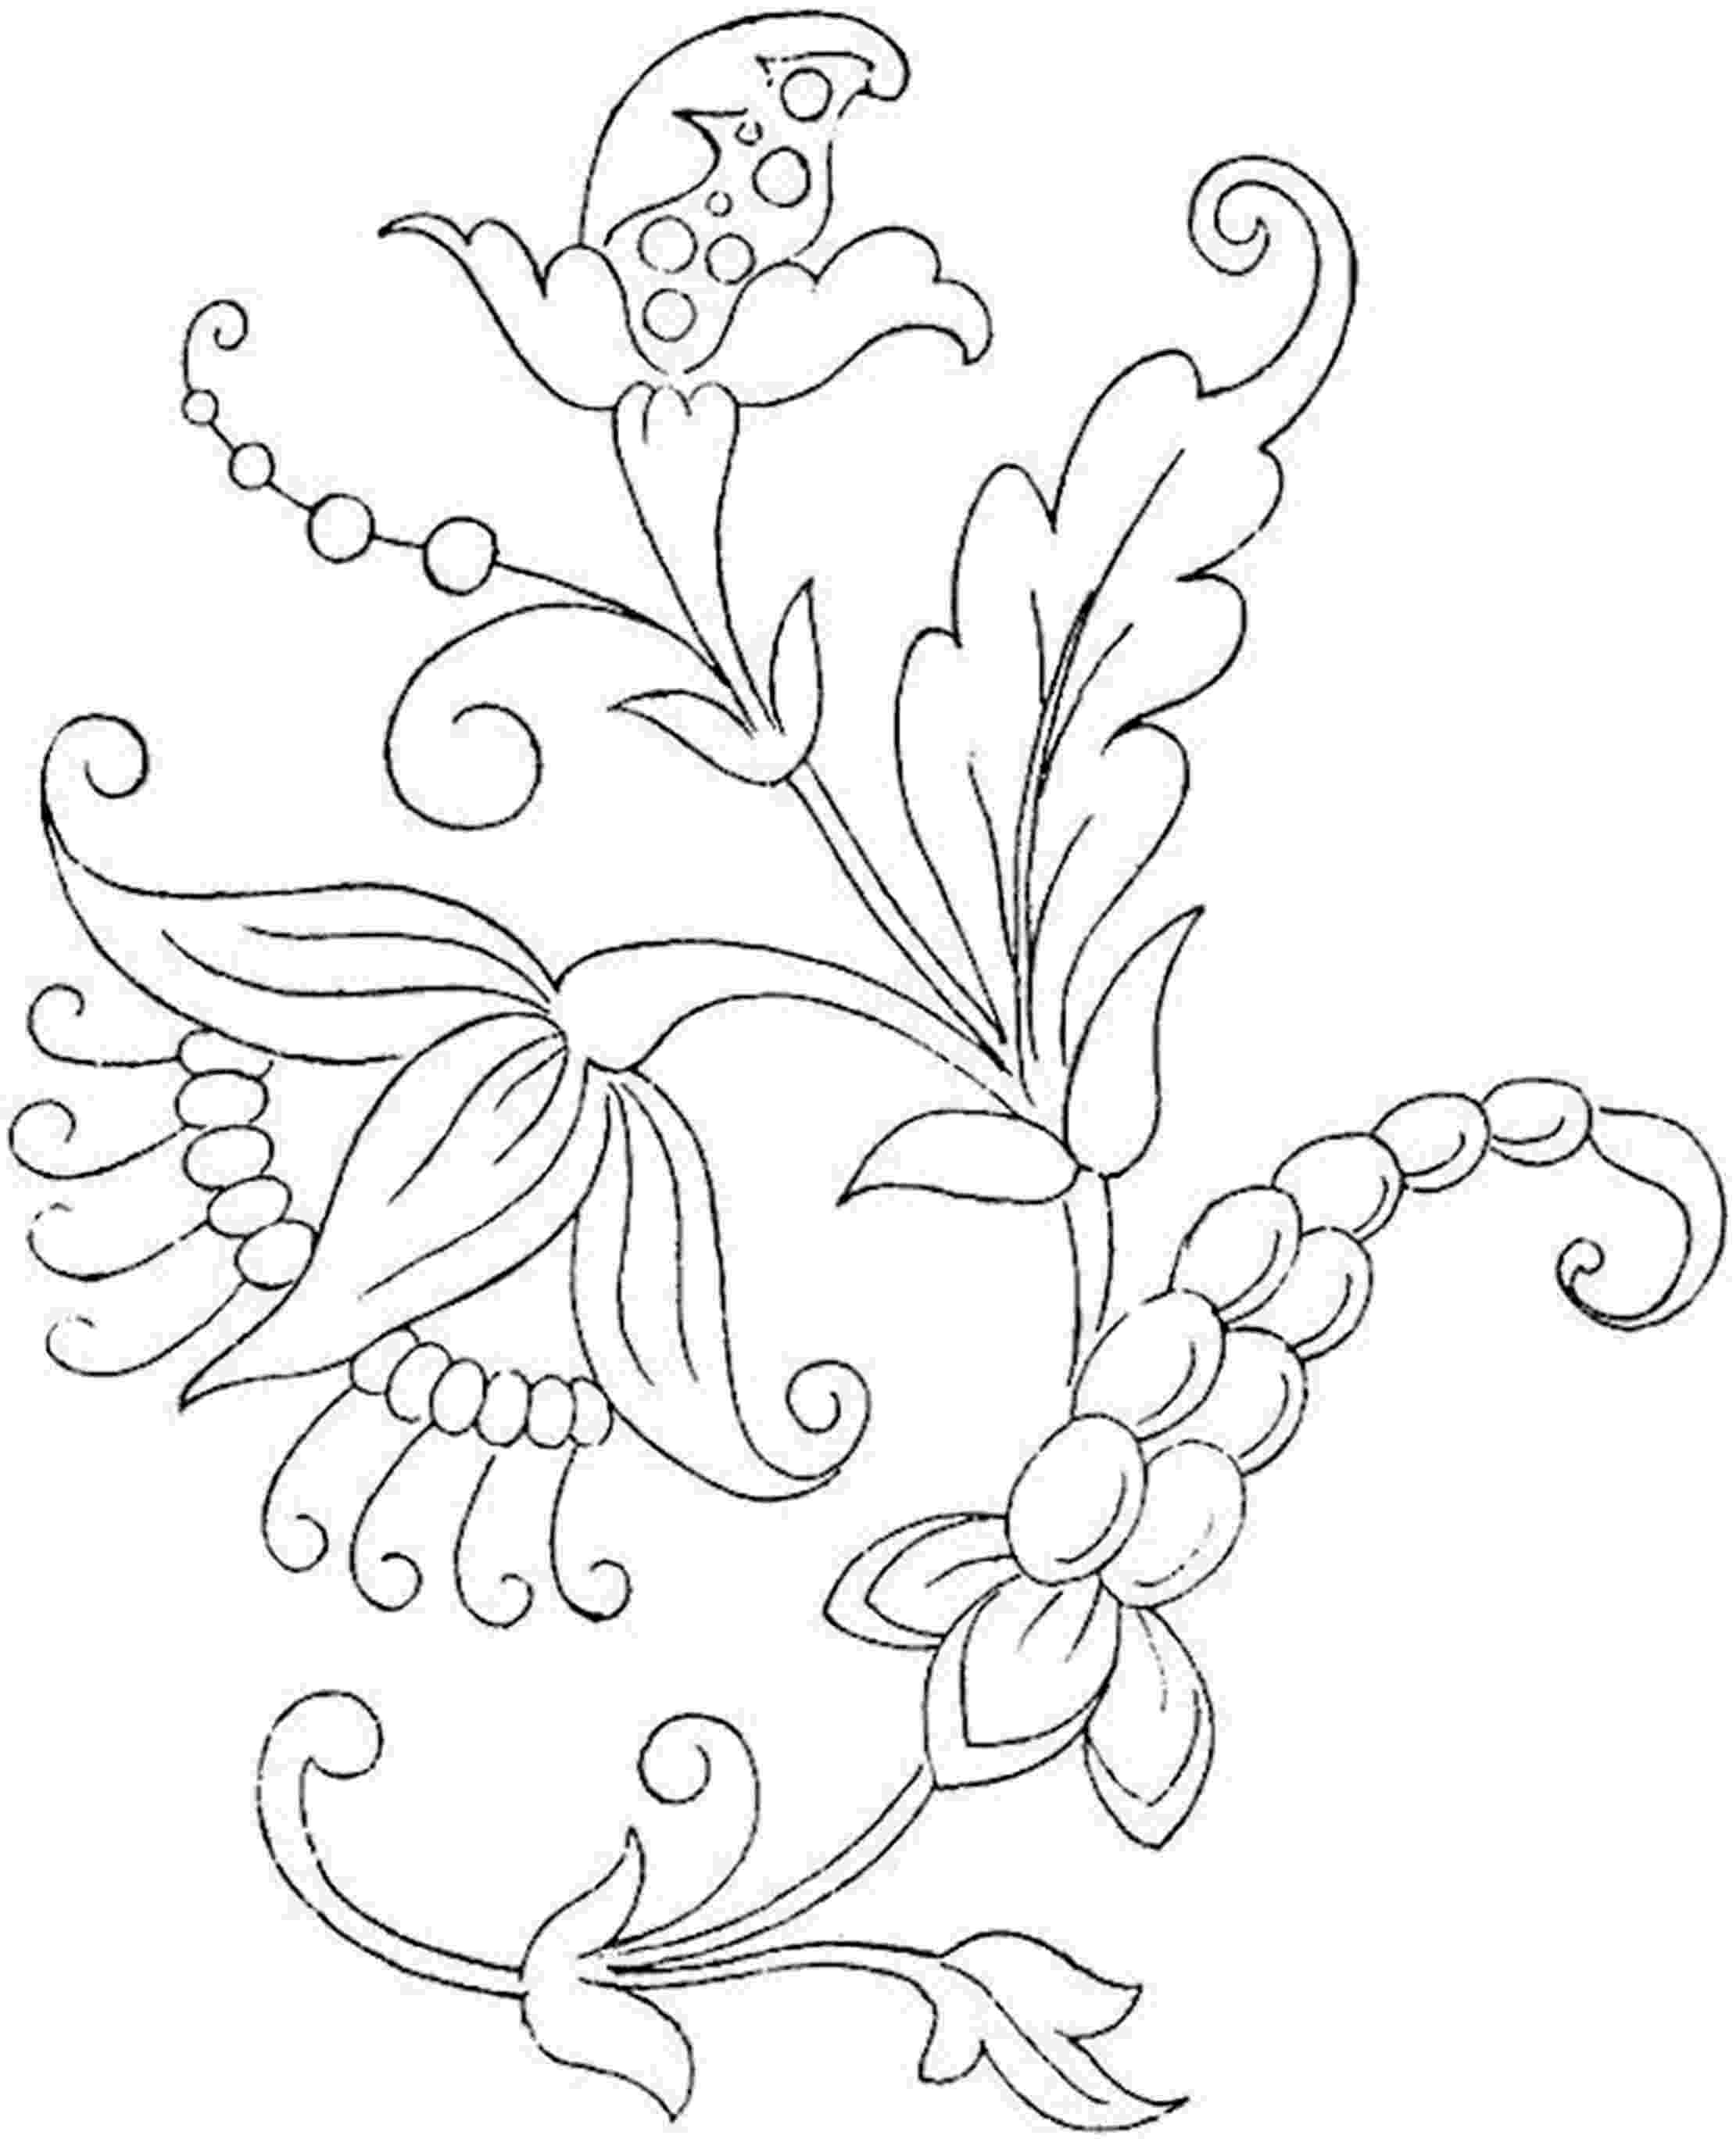 flowers coloring pages for kids free printable flower coloring pages for kids cool2bkids for pages coloring kids flowers